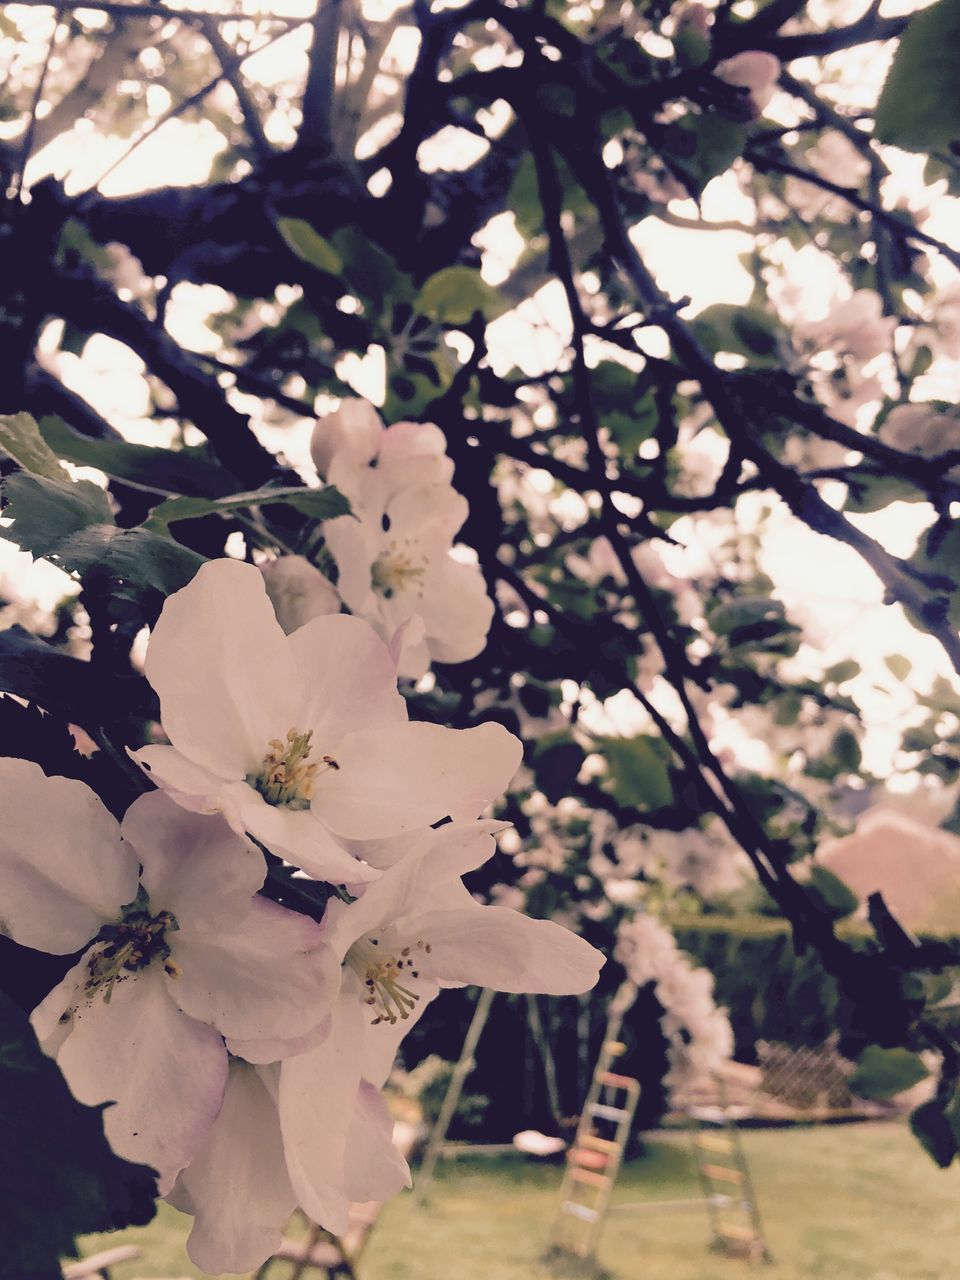 flower, tree, fragility, blossom, beauty in nature, growth, nature, springtime, branch, white color, freshness, petal, apple blossom, orchard, no people, botany, day, focus on foreground, close-up, flower head, outdoors, blooming